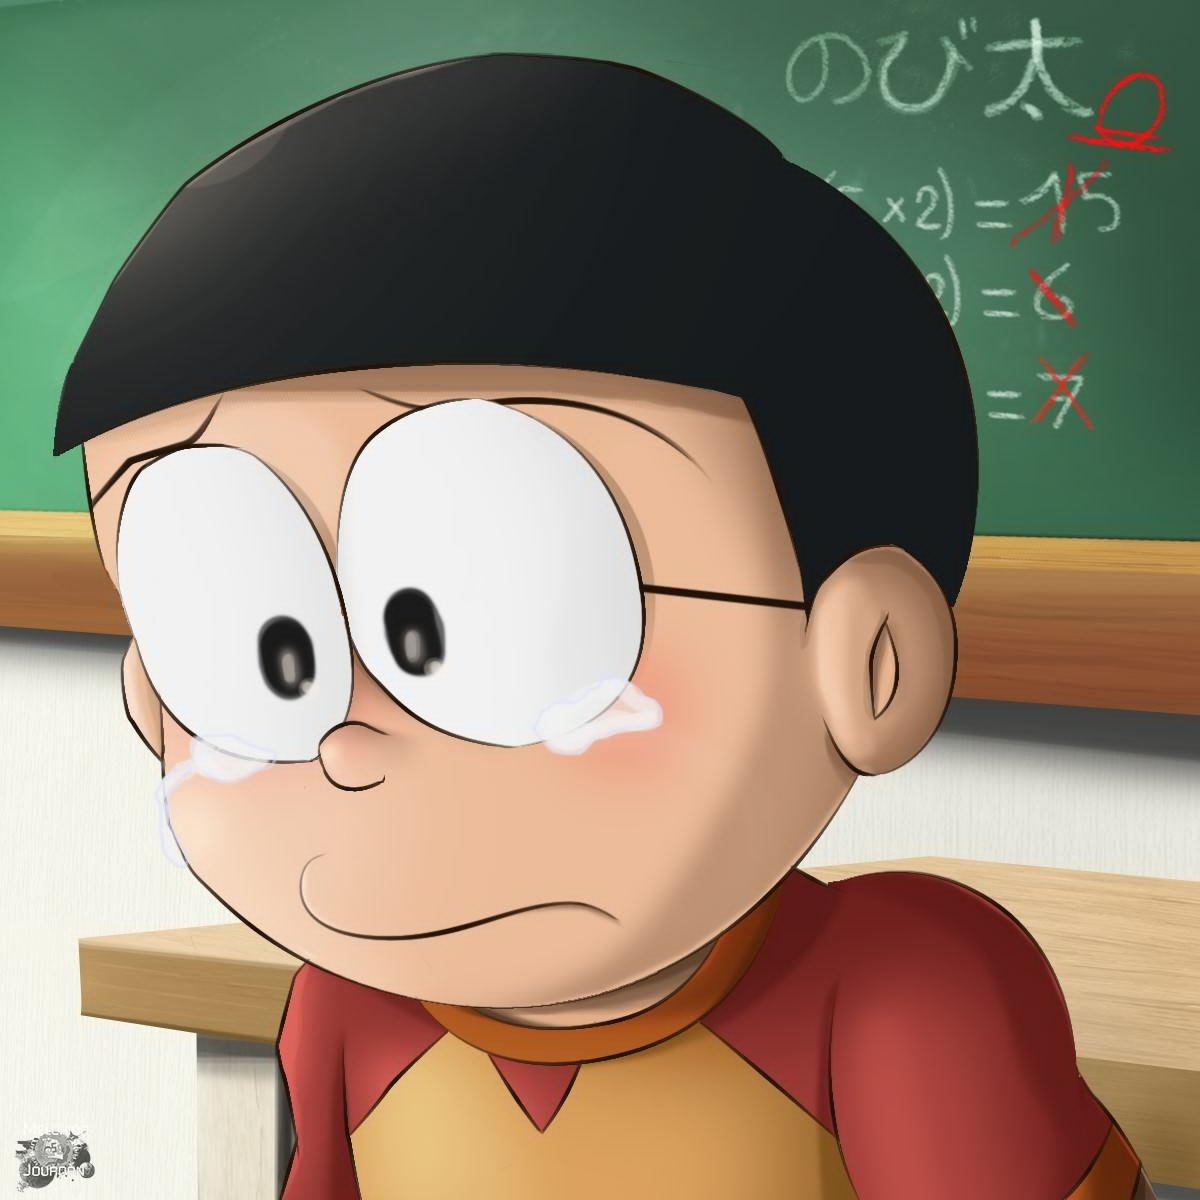 22 doraemon nobita and friends wallpaper 4k images and